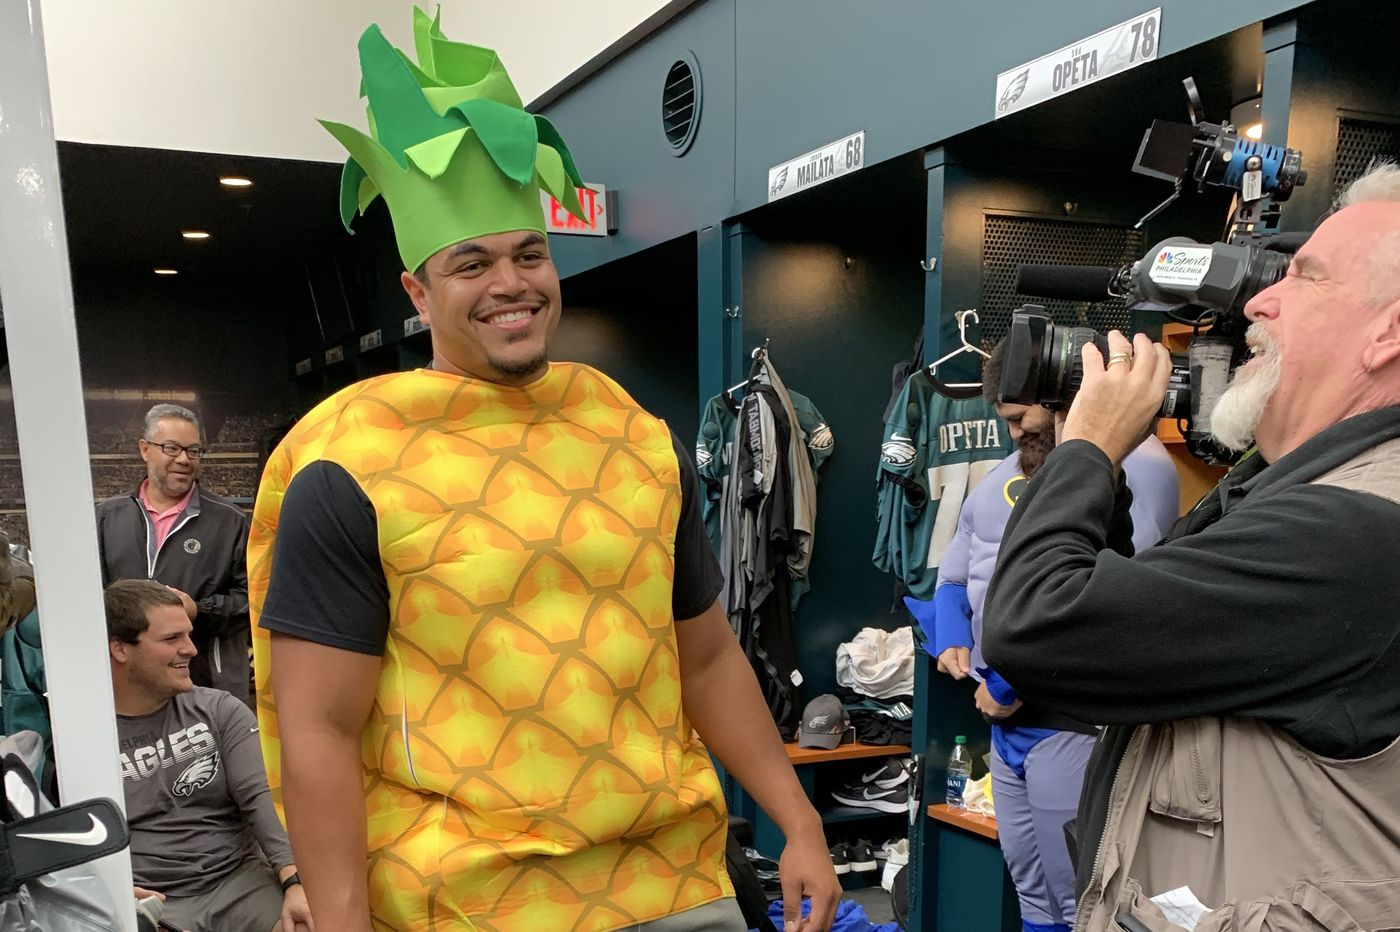 Eagles rookies visit CHOP in Halloween costumes